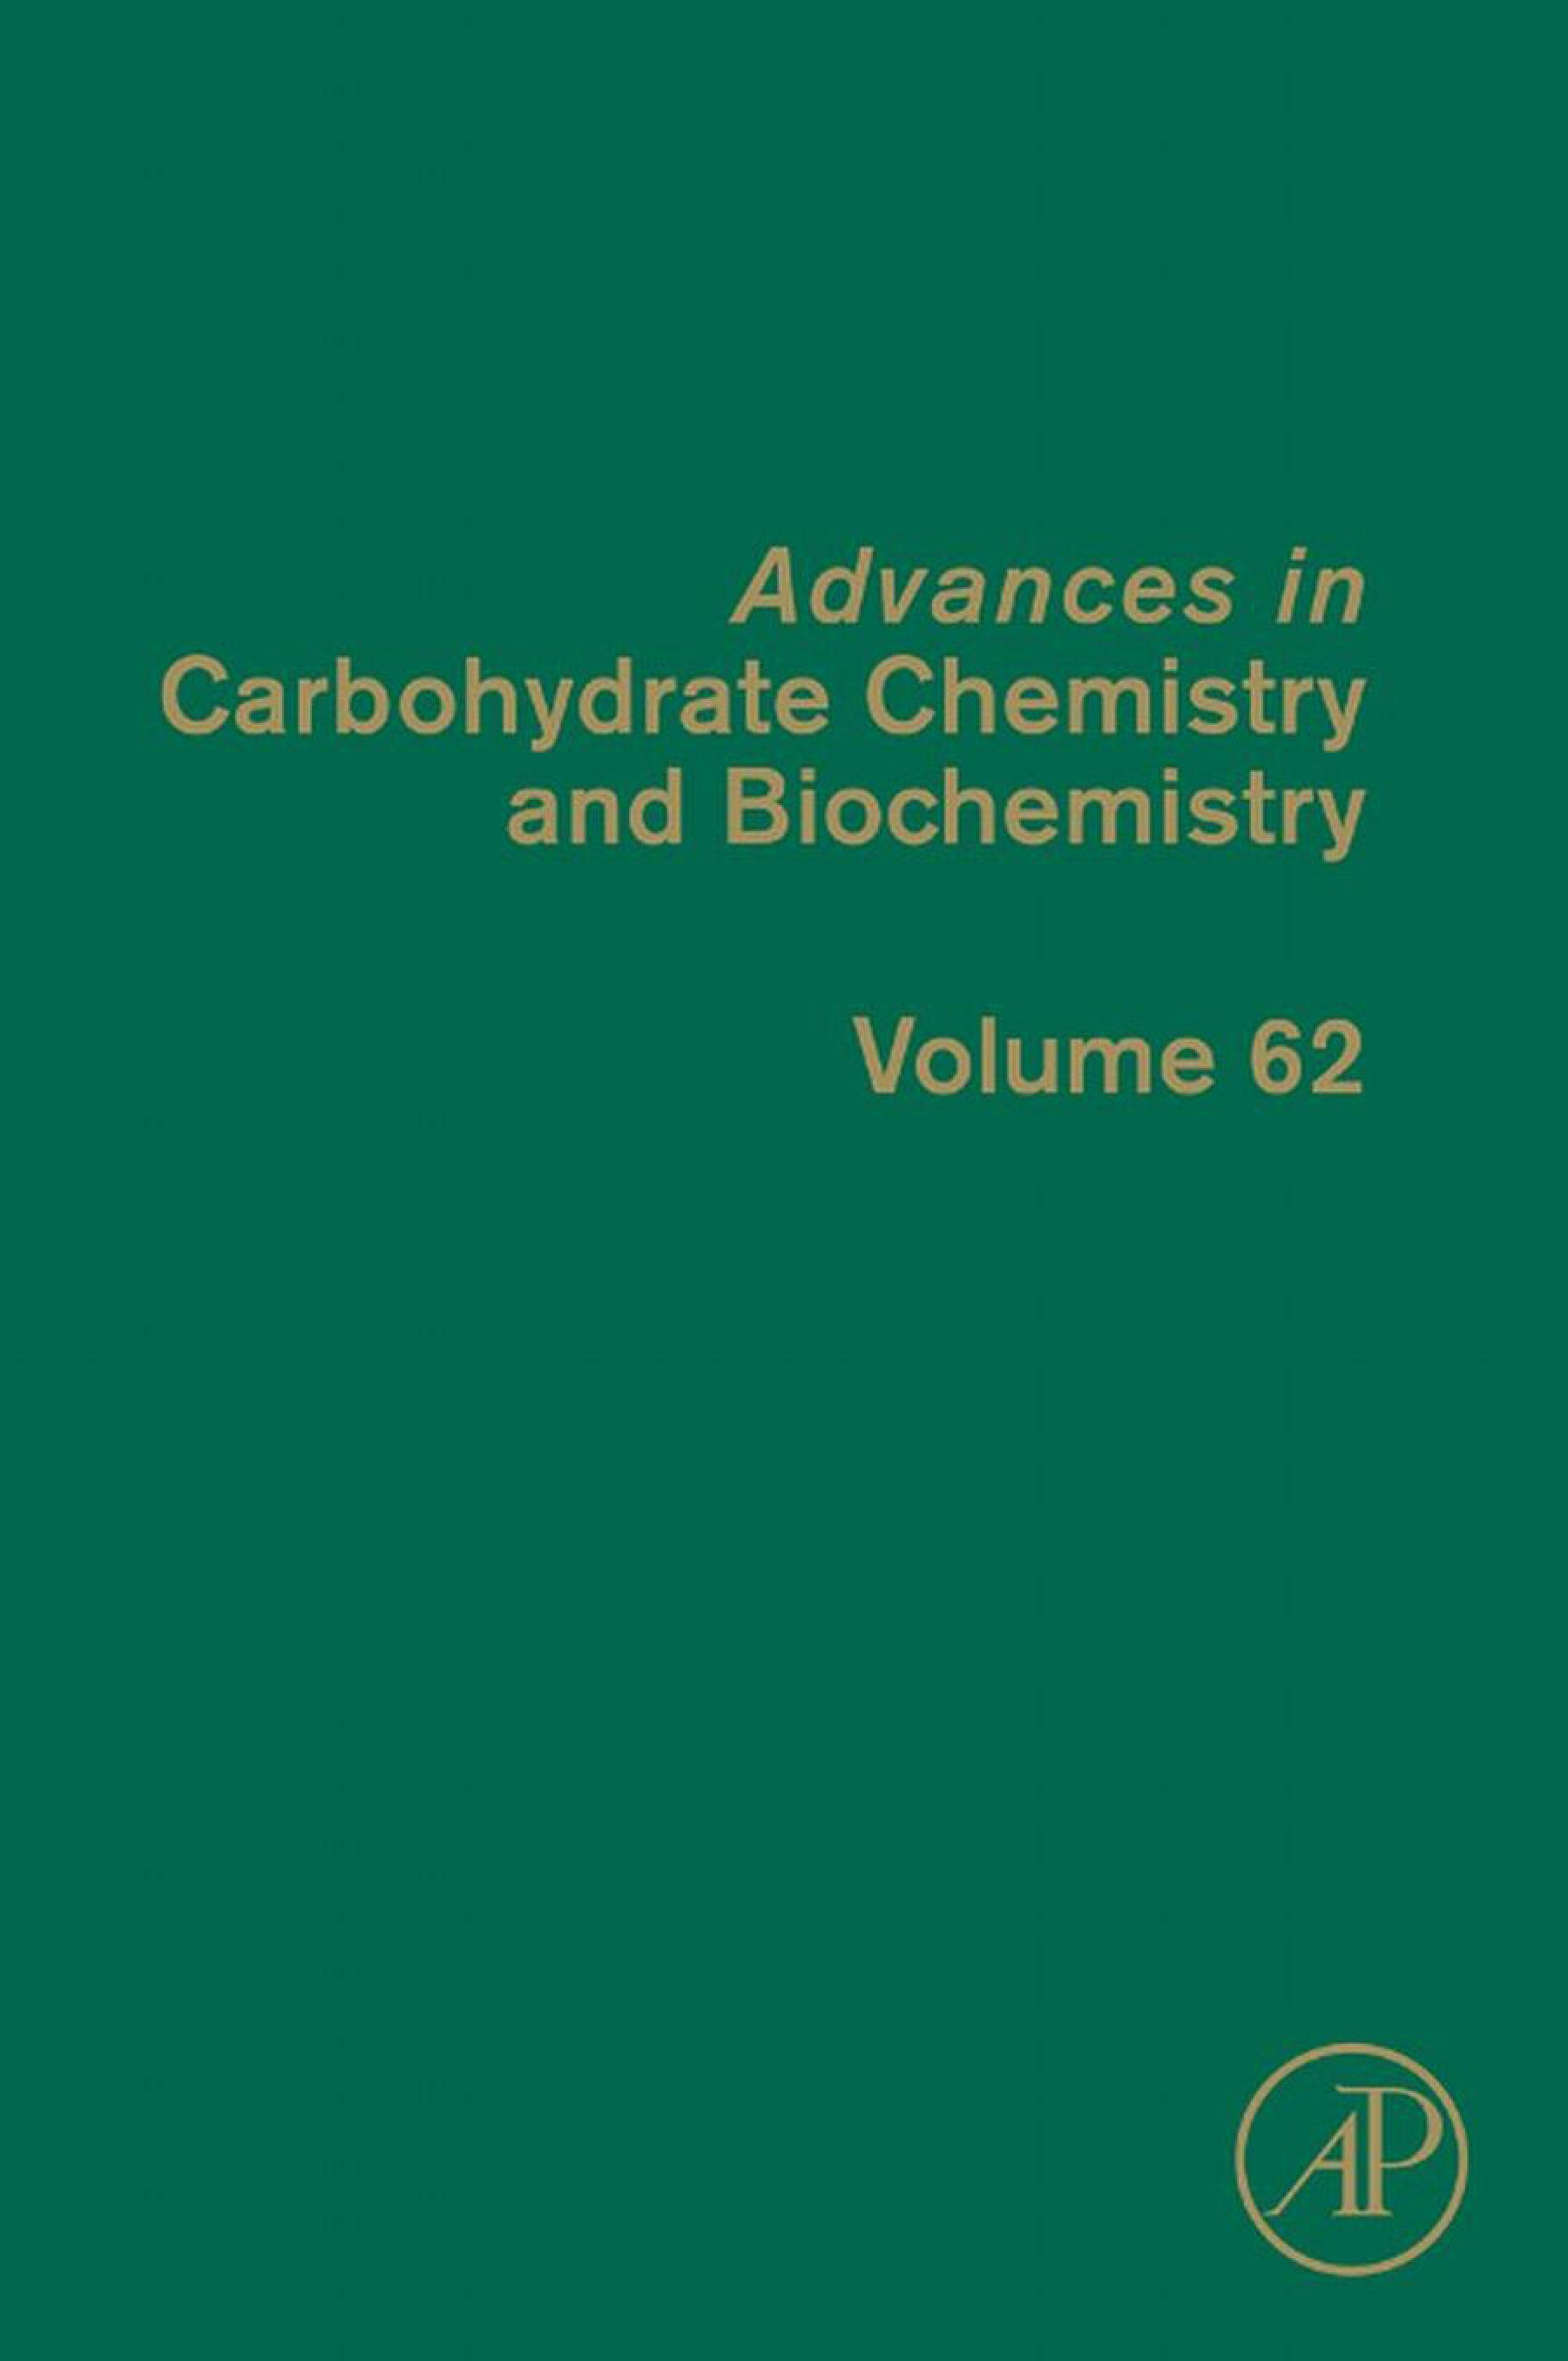 Advances in Carbohydrate Chemistry and Biochemistry EB9780080563107